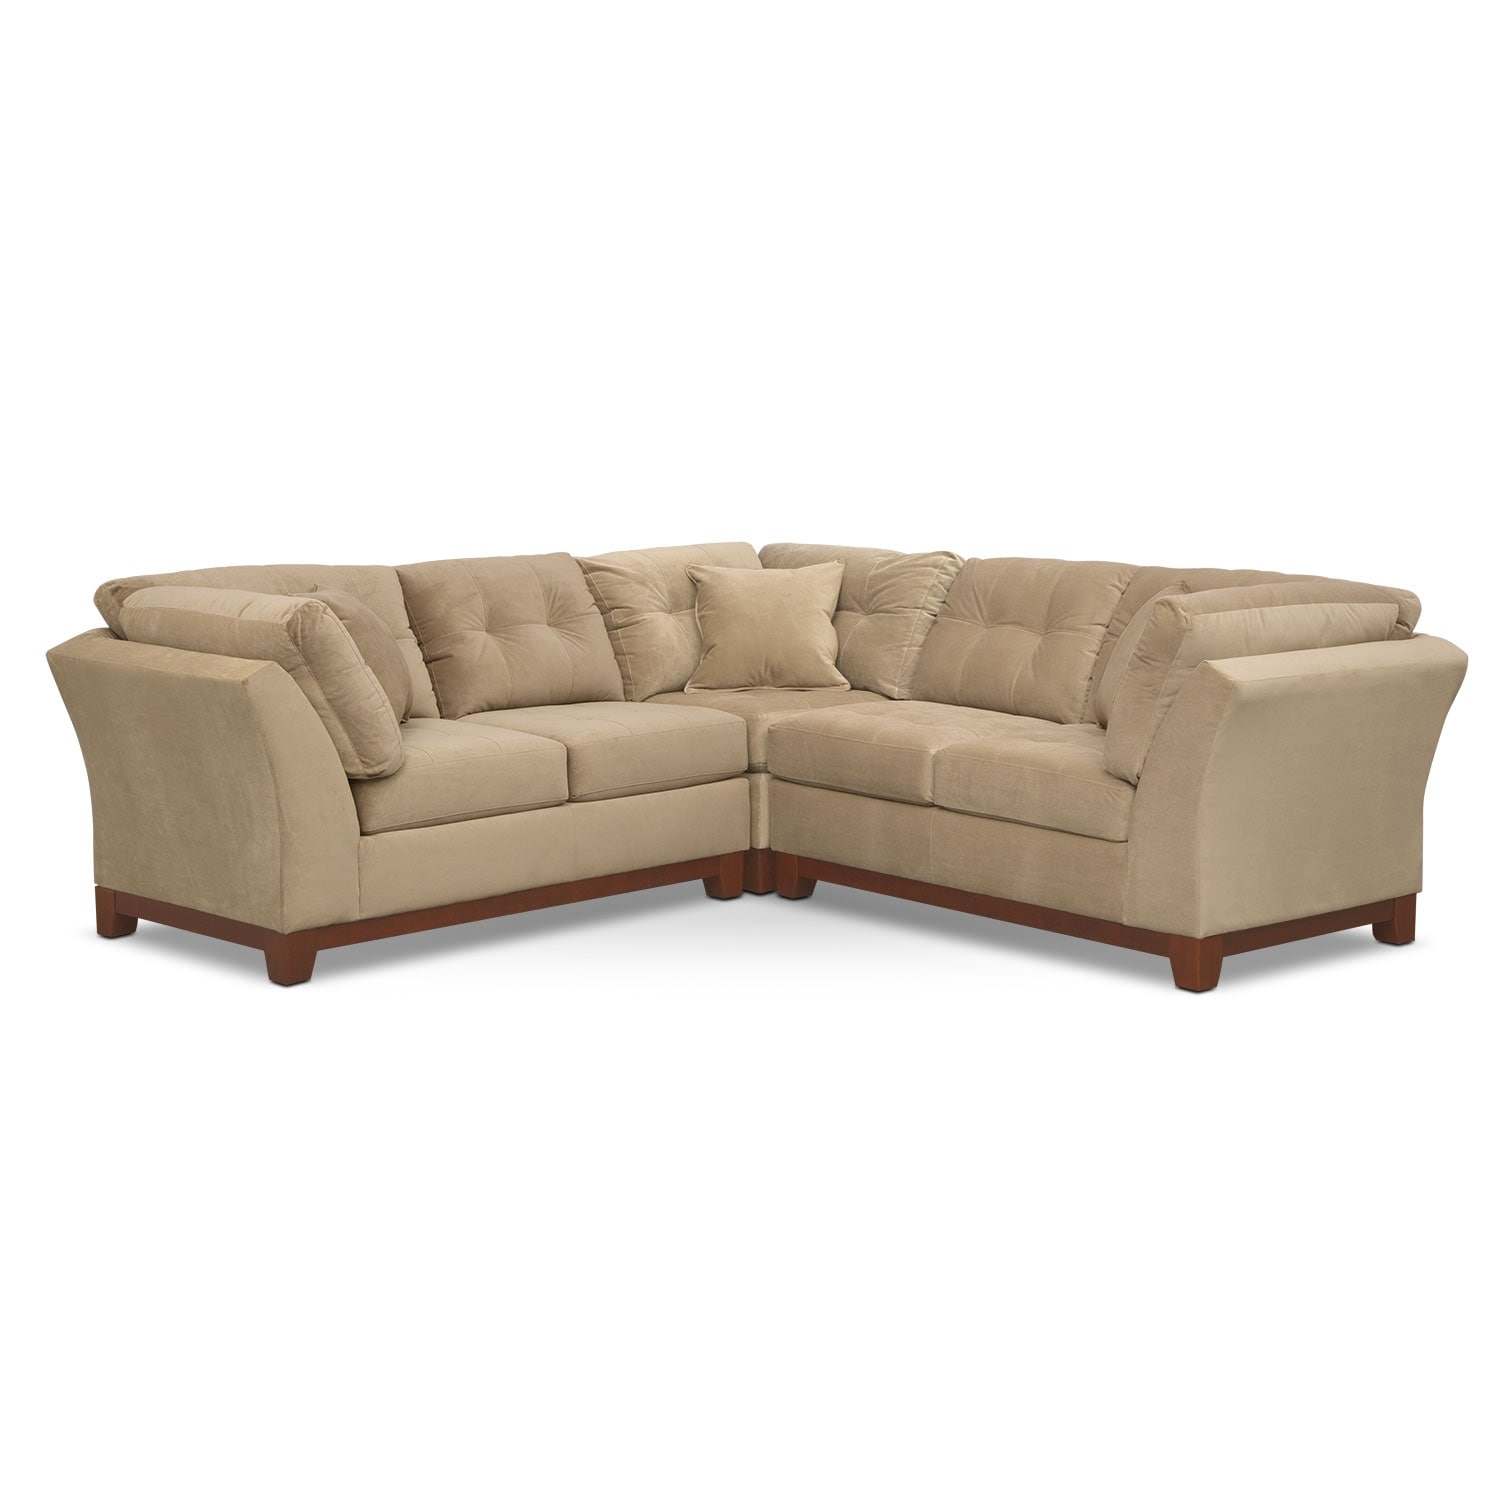 Solace 3-Piece Sectional - Cocoa